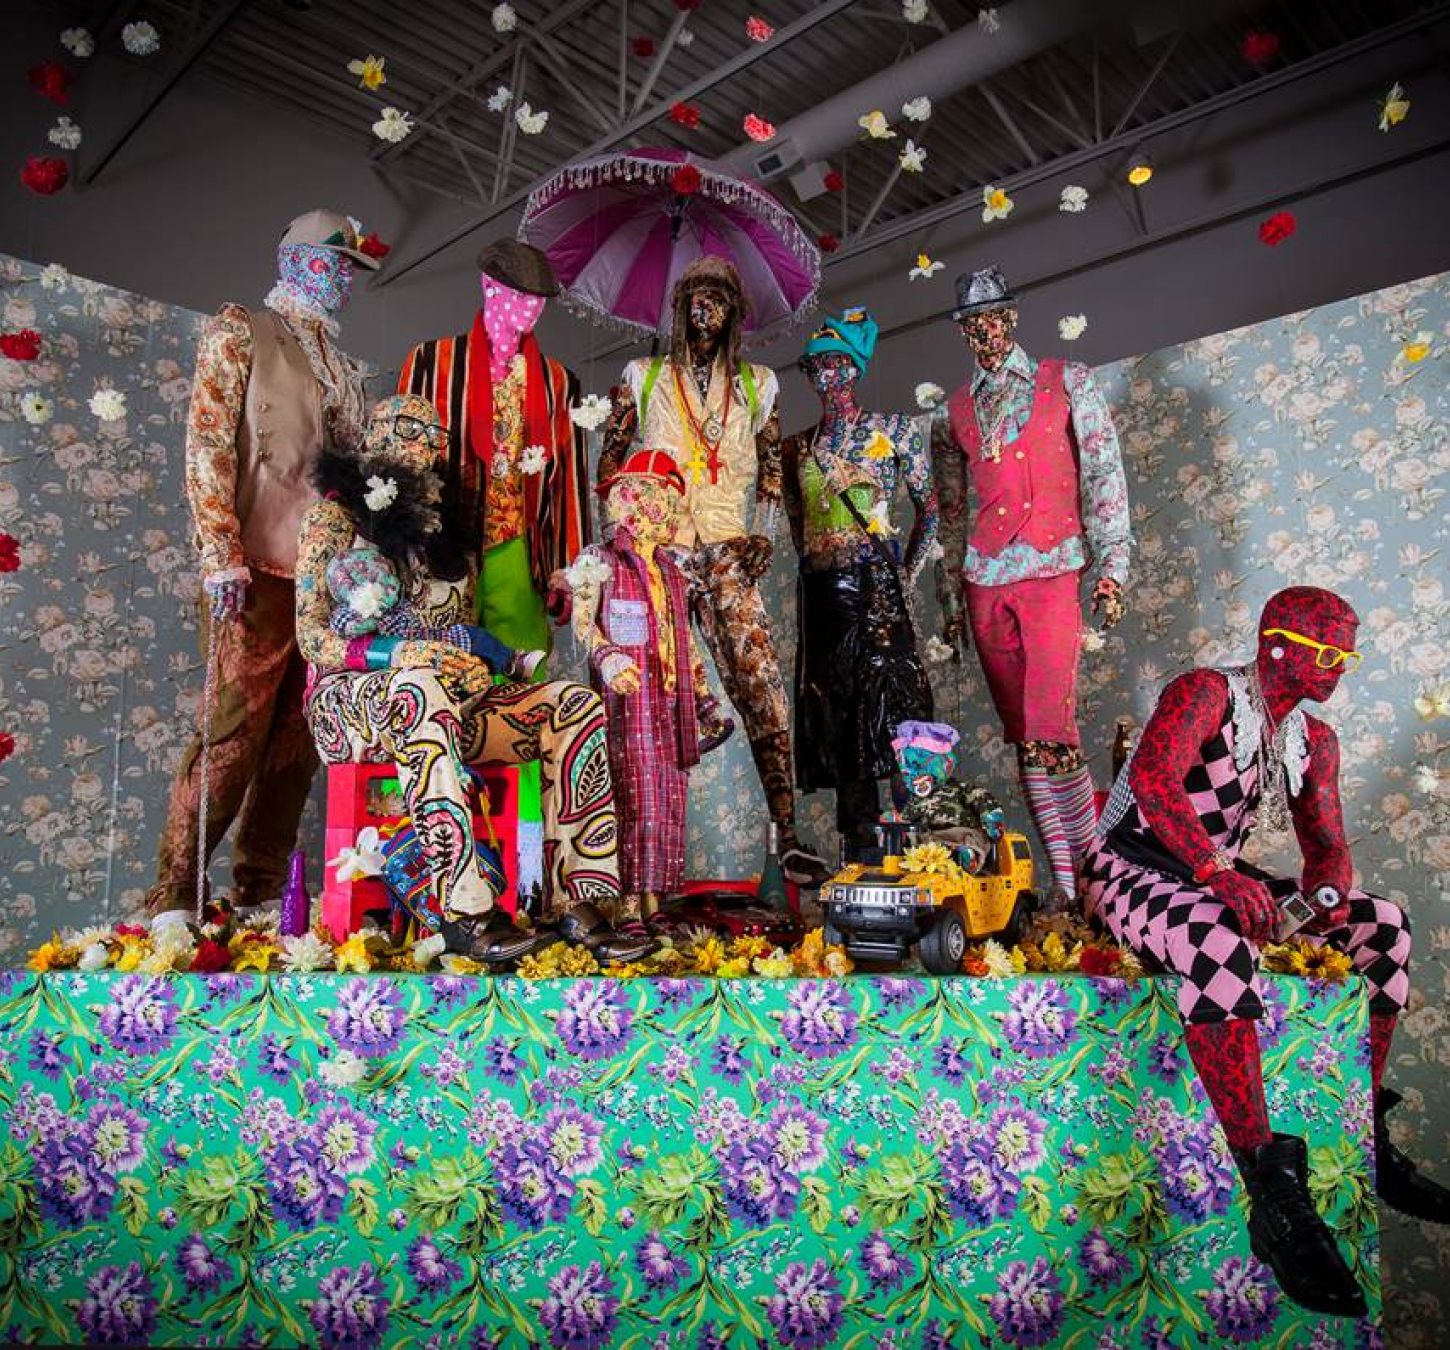 Ebony G. Patterson. Swag Swag Krew (from the Out and Bad series). Installation view, John Michael Kohler Arts Center, 2011–14.